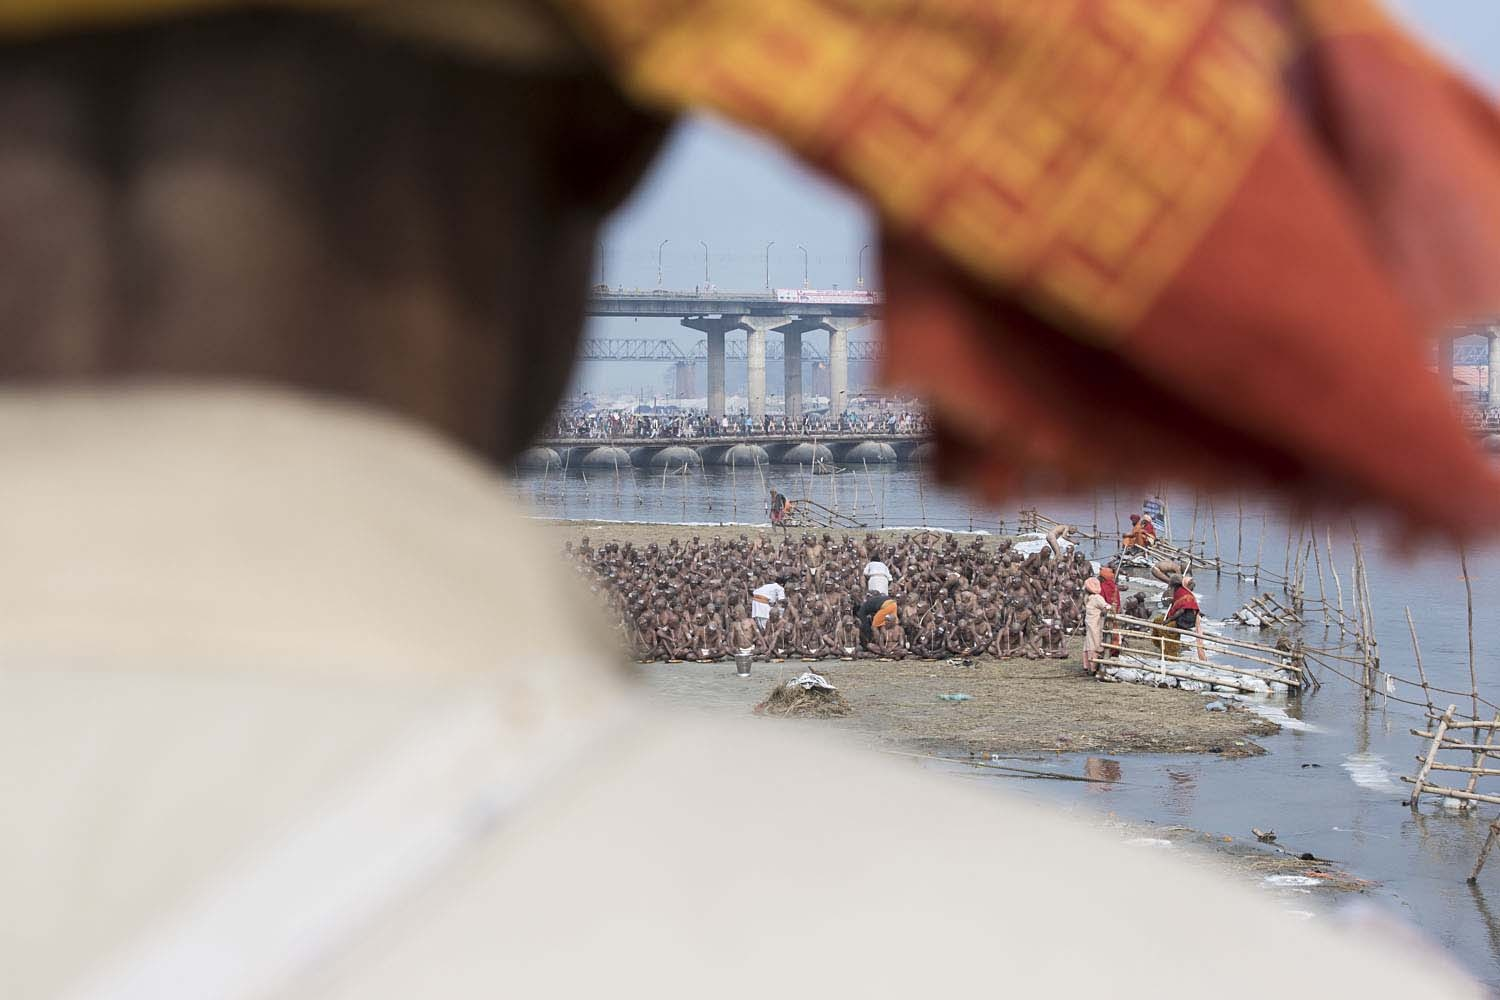 The initiates undertaking 16 generations of Pind-dan, where they renounce material relationships and attachments including attachment to the self on the banks of river Ganges at the Kumbh Mela only. Post this ritual, these 'shishyas' (students) are called 'Avdhoots' (Neither Man or Woman, God Like), and can get themselves worshipped.